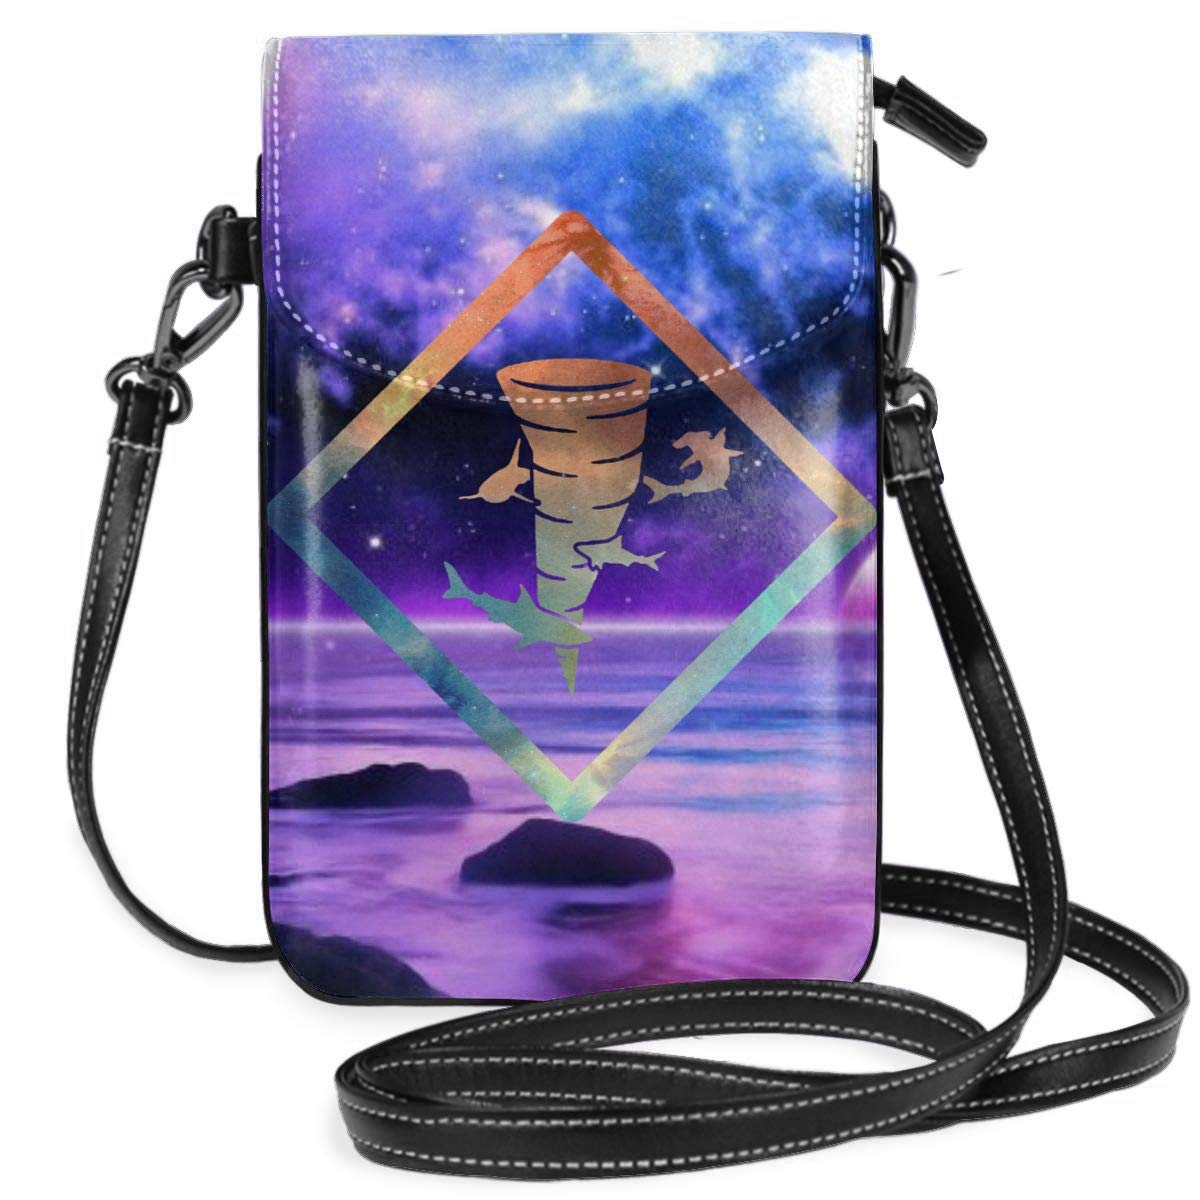 Small Cell Phone Purse Shark Tornado Crossbody Bags with Shoulder Strap Coin Purse Wallet for Women,Girls